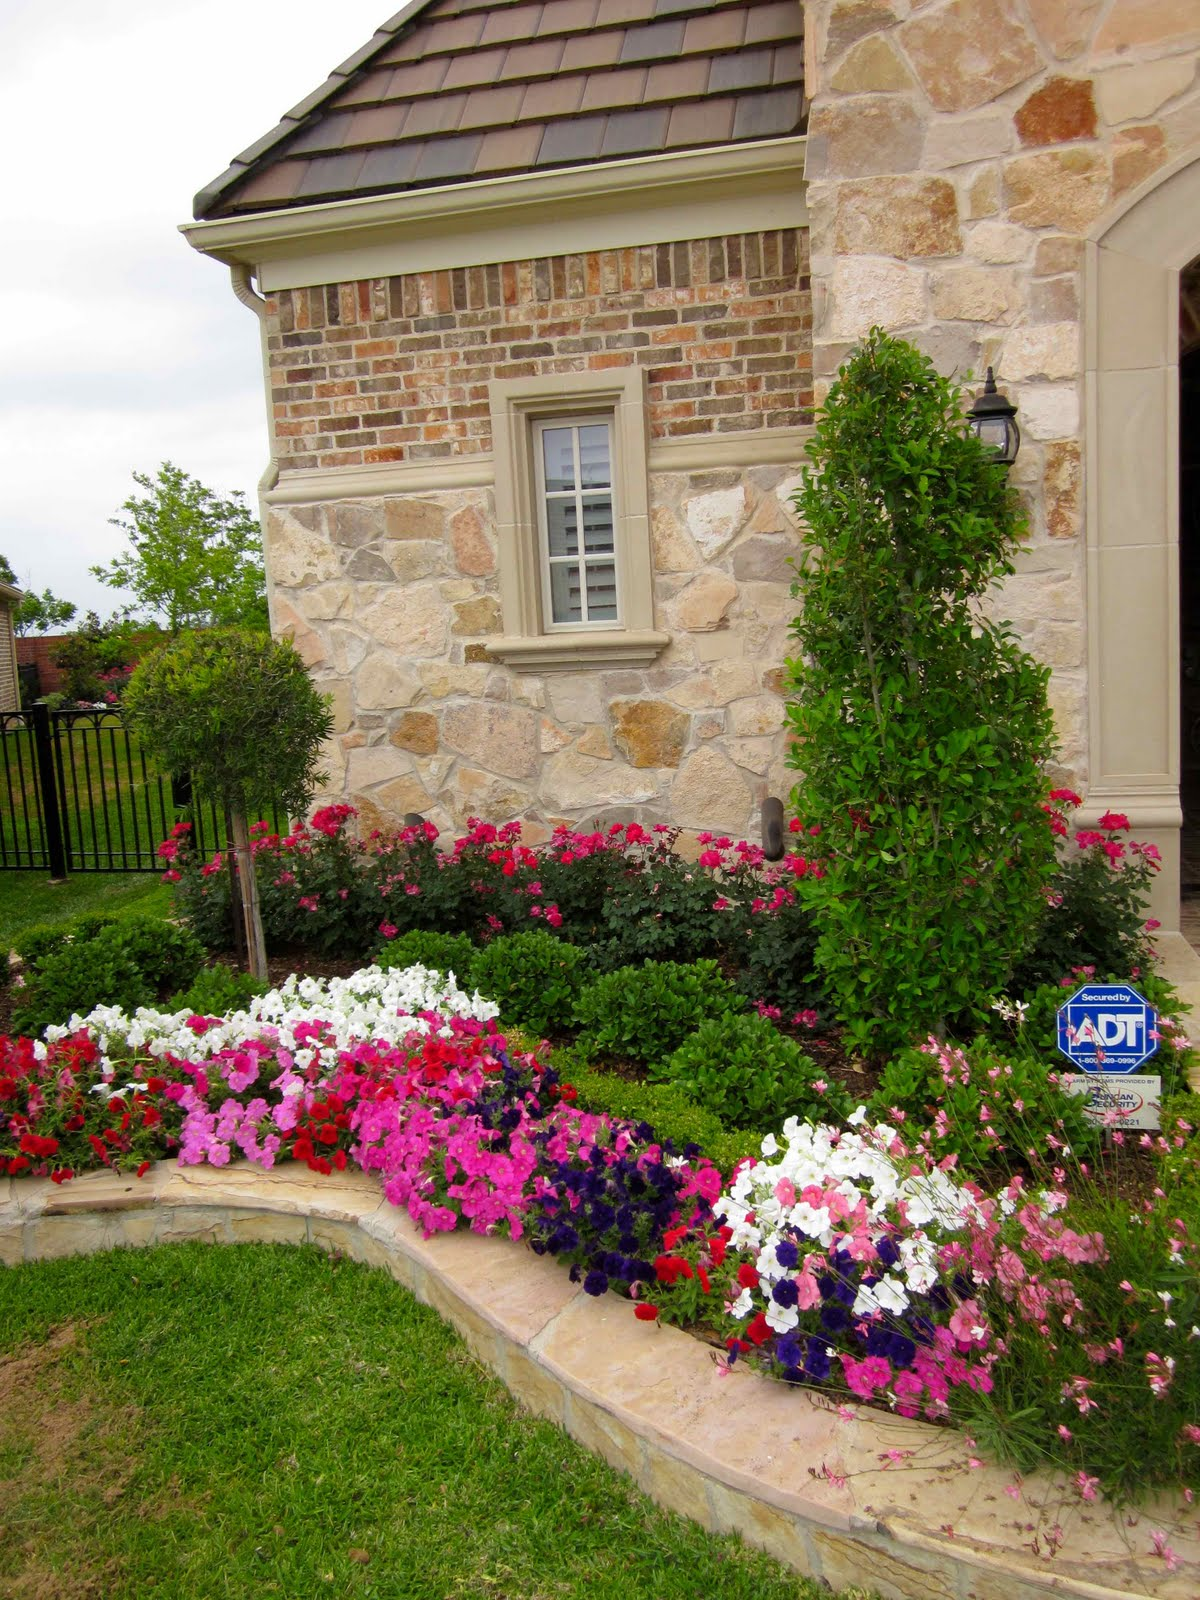 Quotidian grace spring glorious in sugar land for Spring garden designs